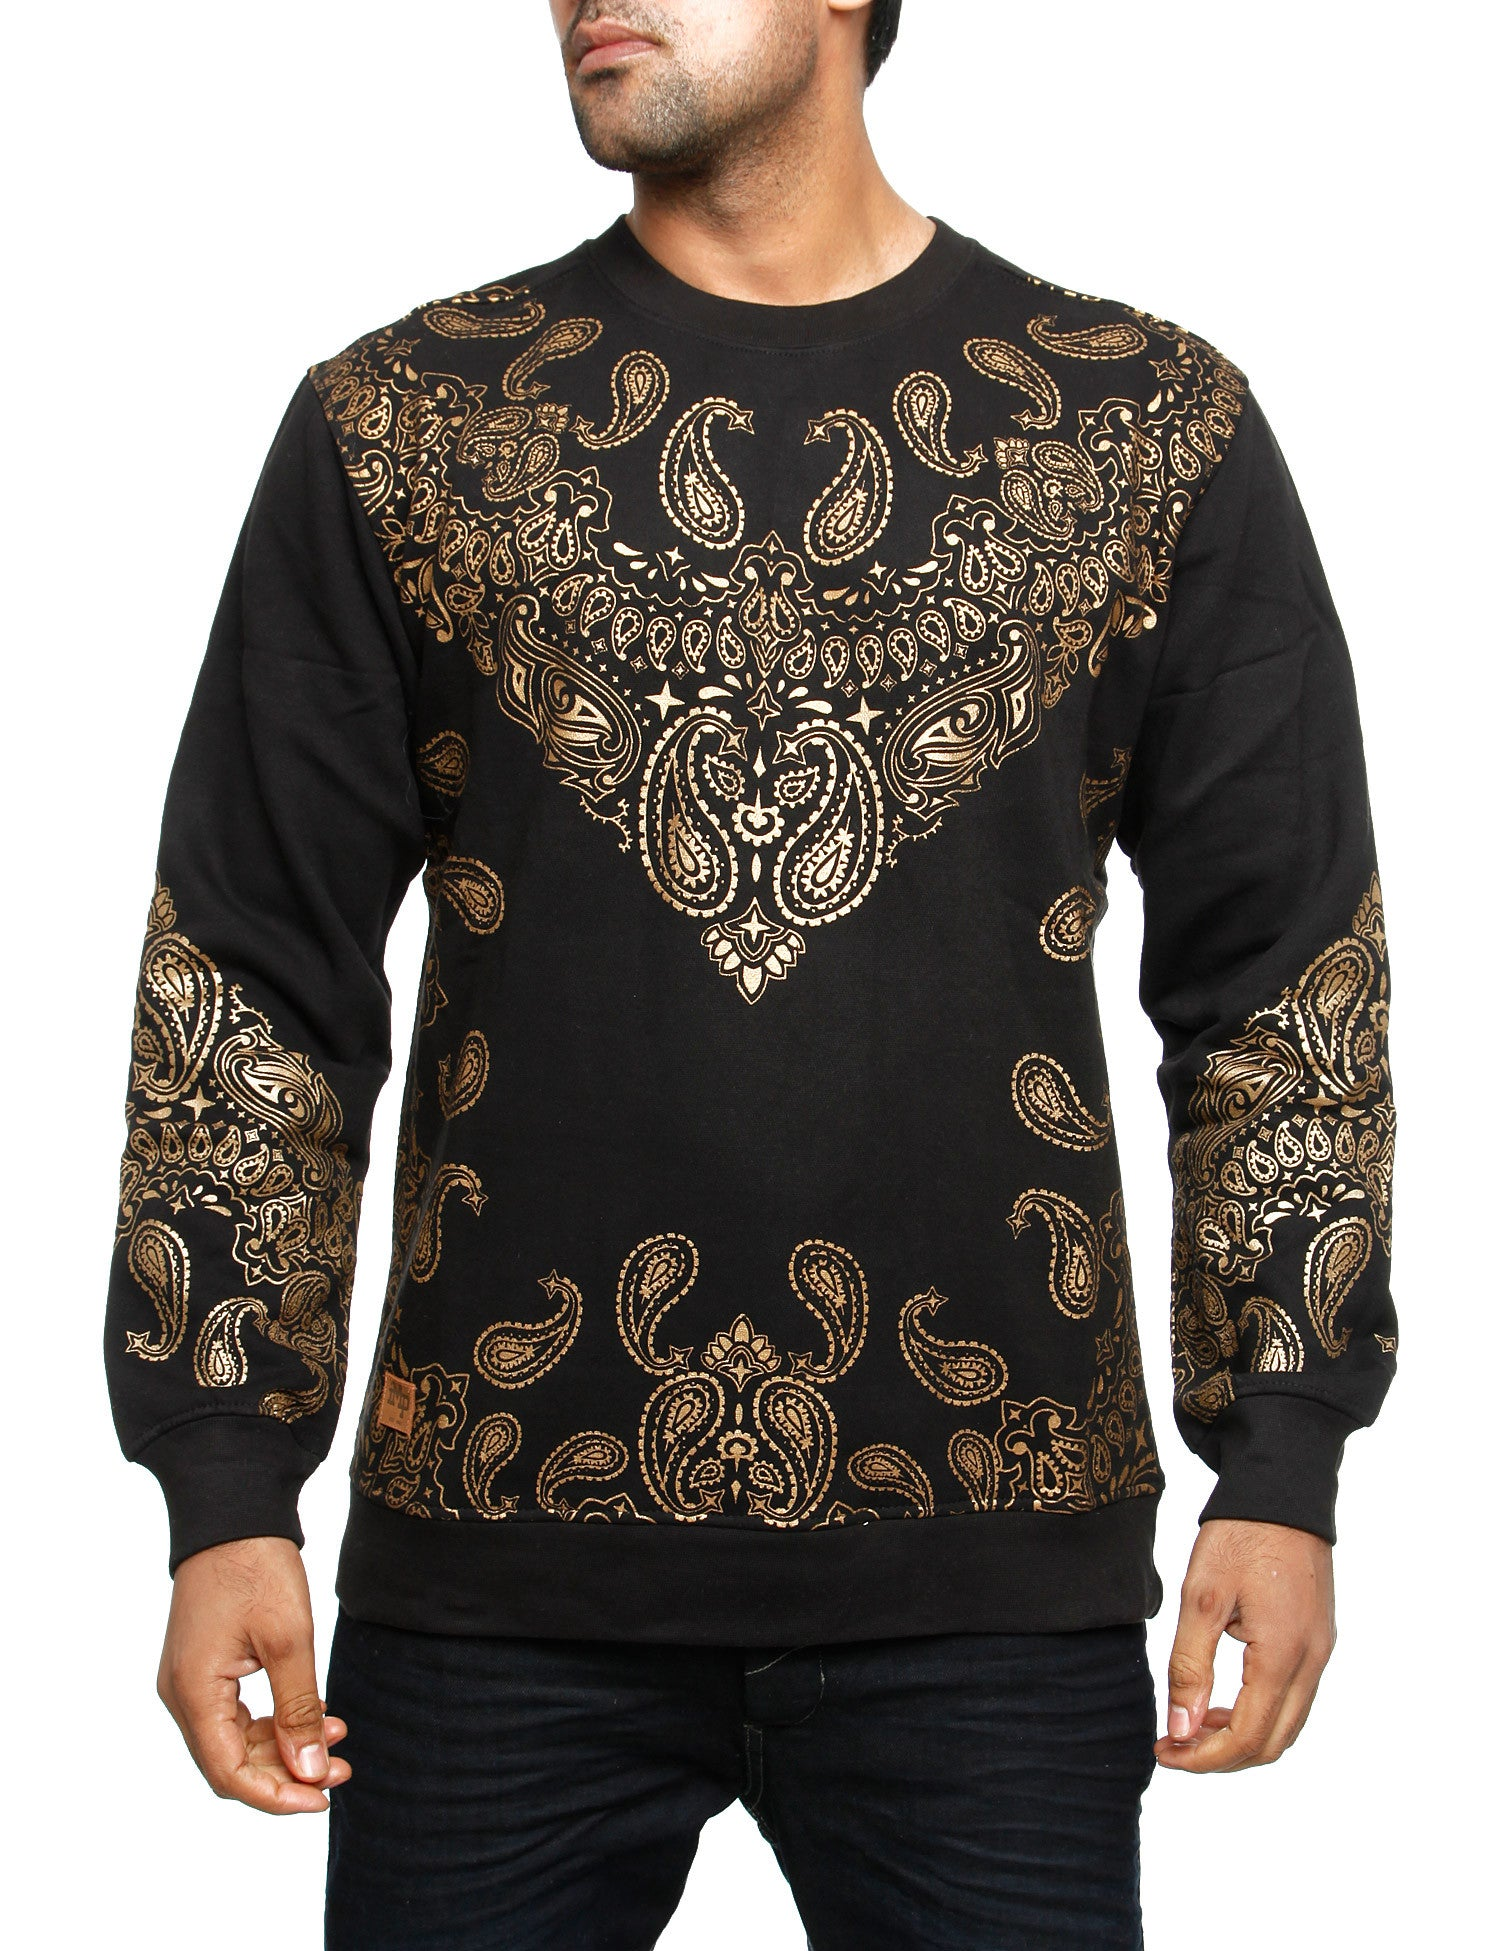 Imperious Bandana Sweatshirt CS46 Black Gold